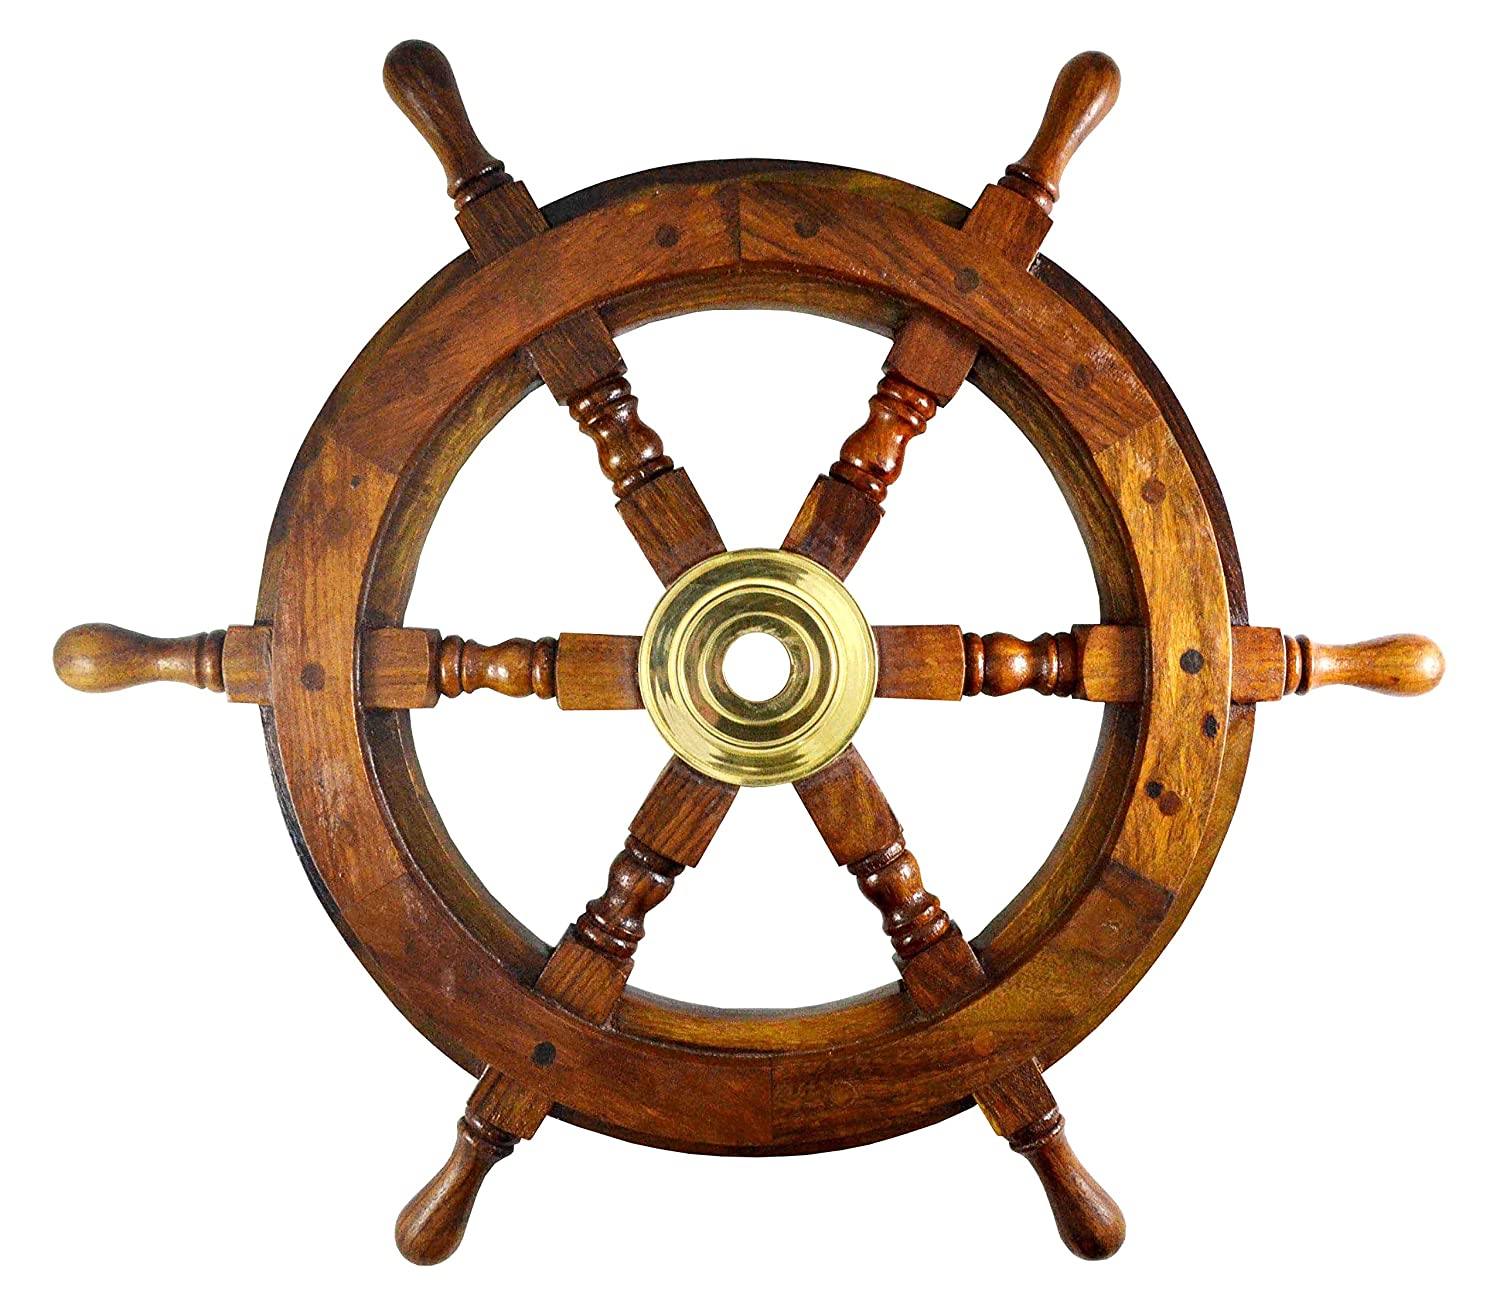 Nautical Wheel Decor: Ship Wheel Ships Steering Boat Pirate Captains Nautical